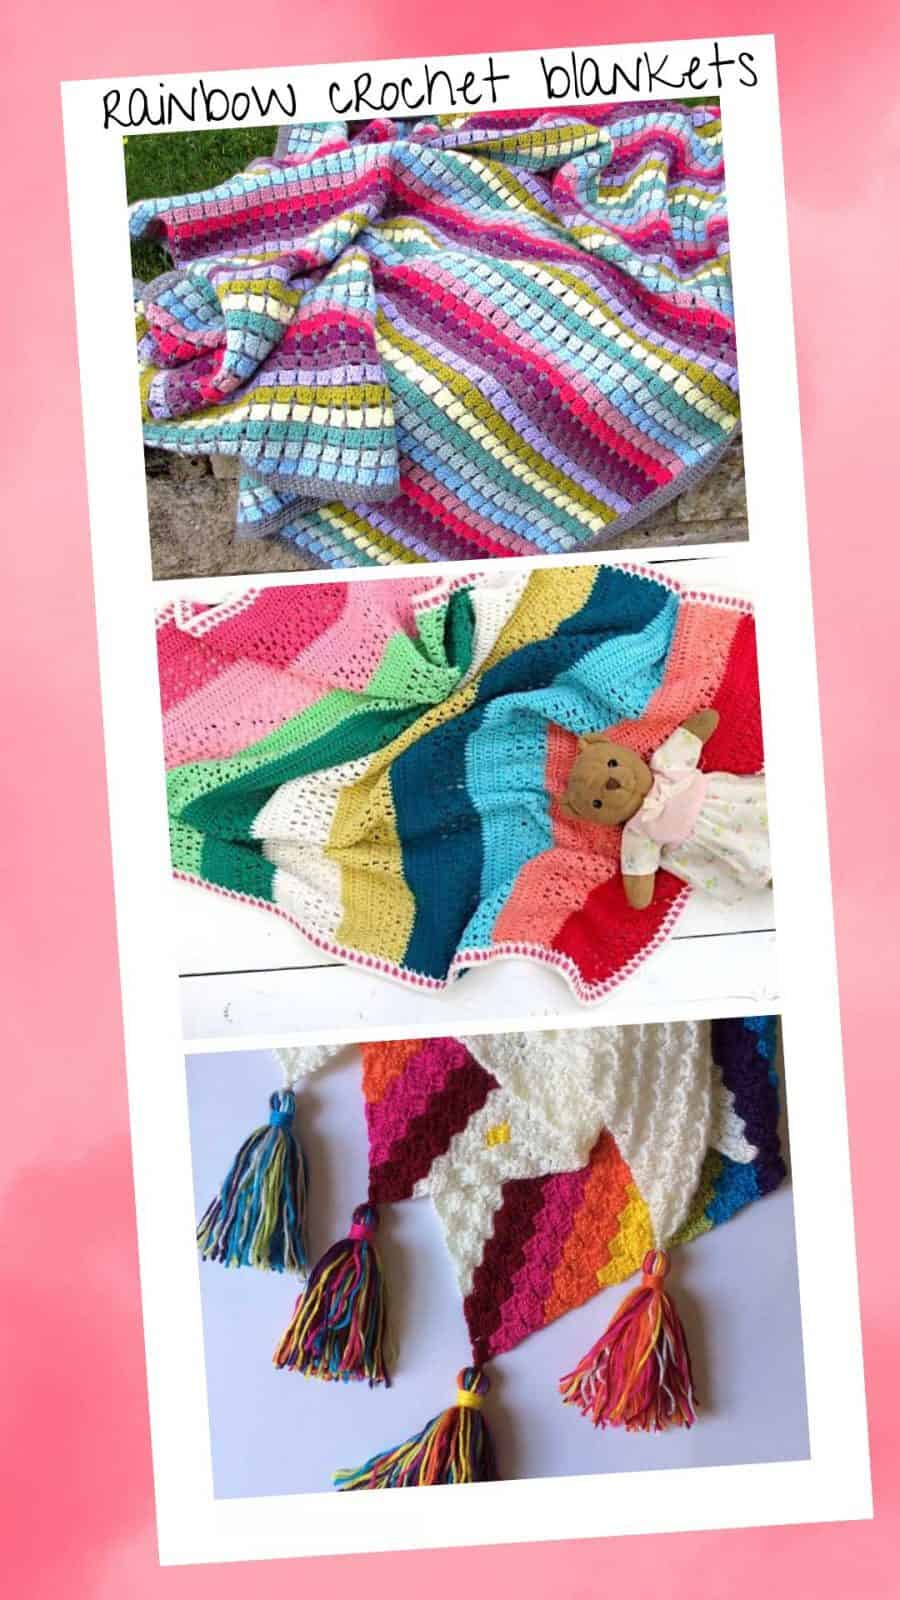 These gorgeous colorful blankets are the perfect way to celebrate the arrival of a rainbow baby. These are blankets to treasure for years to come.